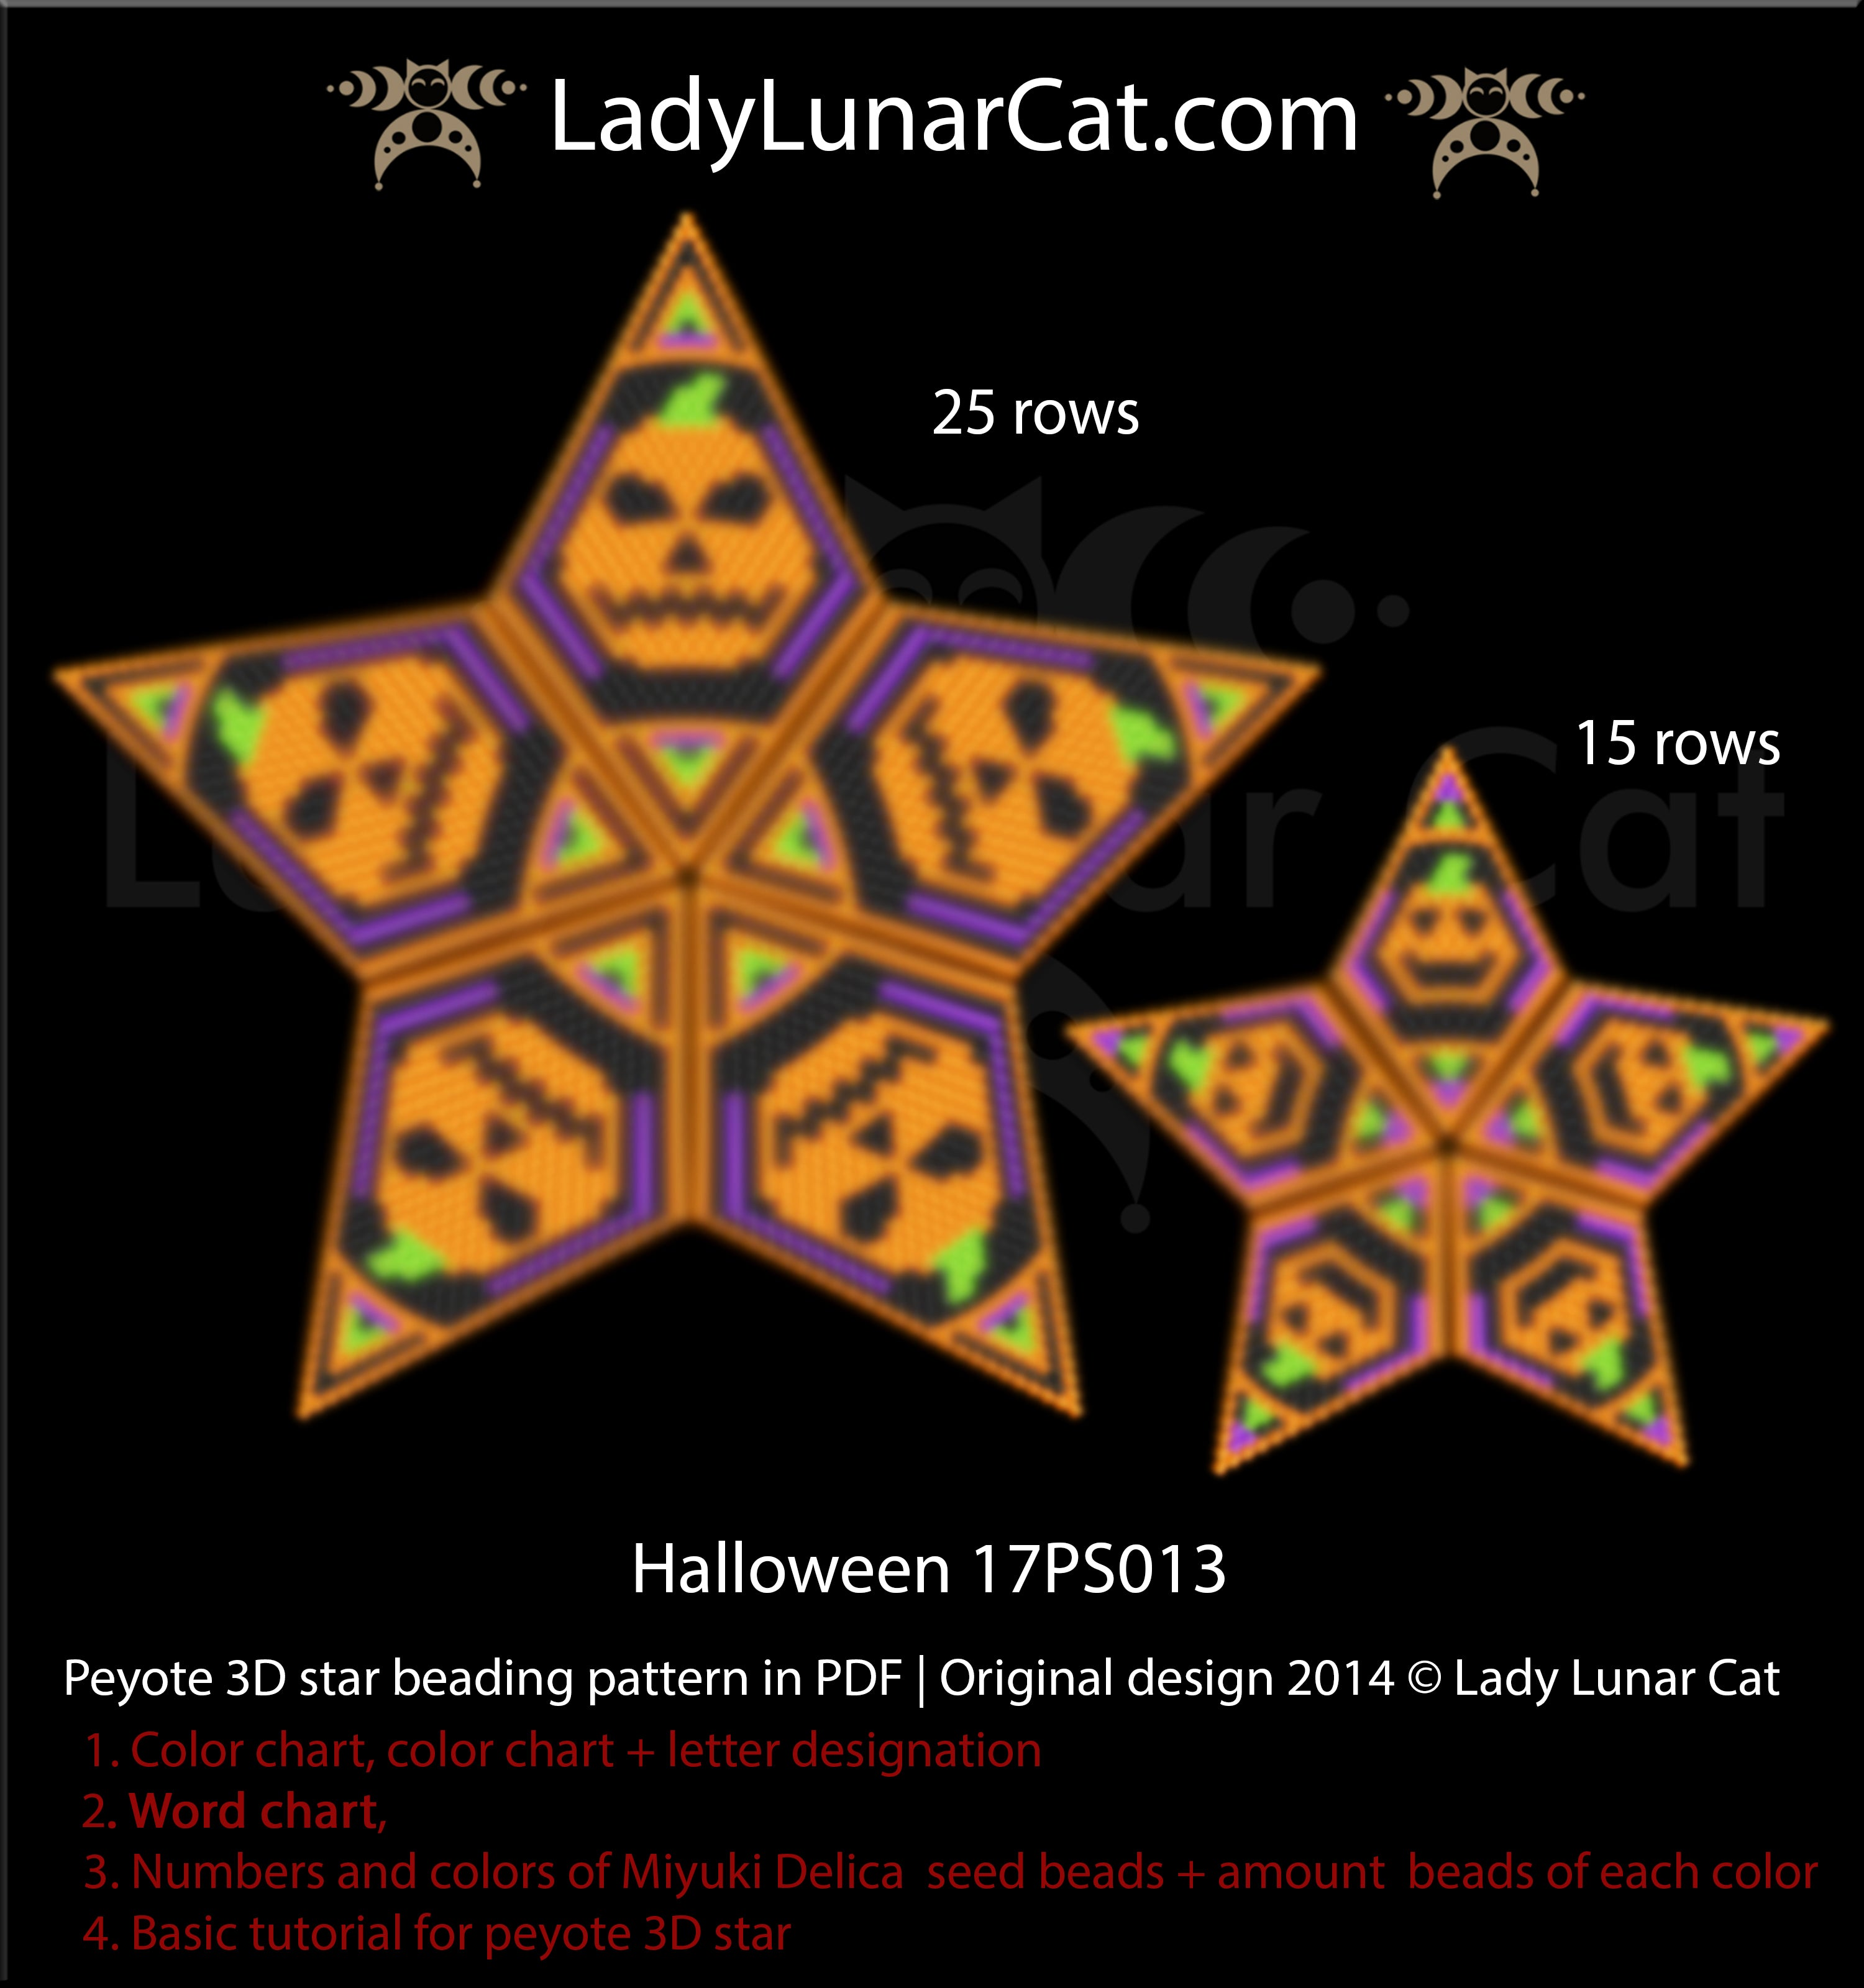 Peyote star patterns for beading Halloween by Lady Lunar Cat | Seed beads tutorial for beaded star